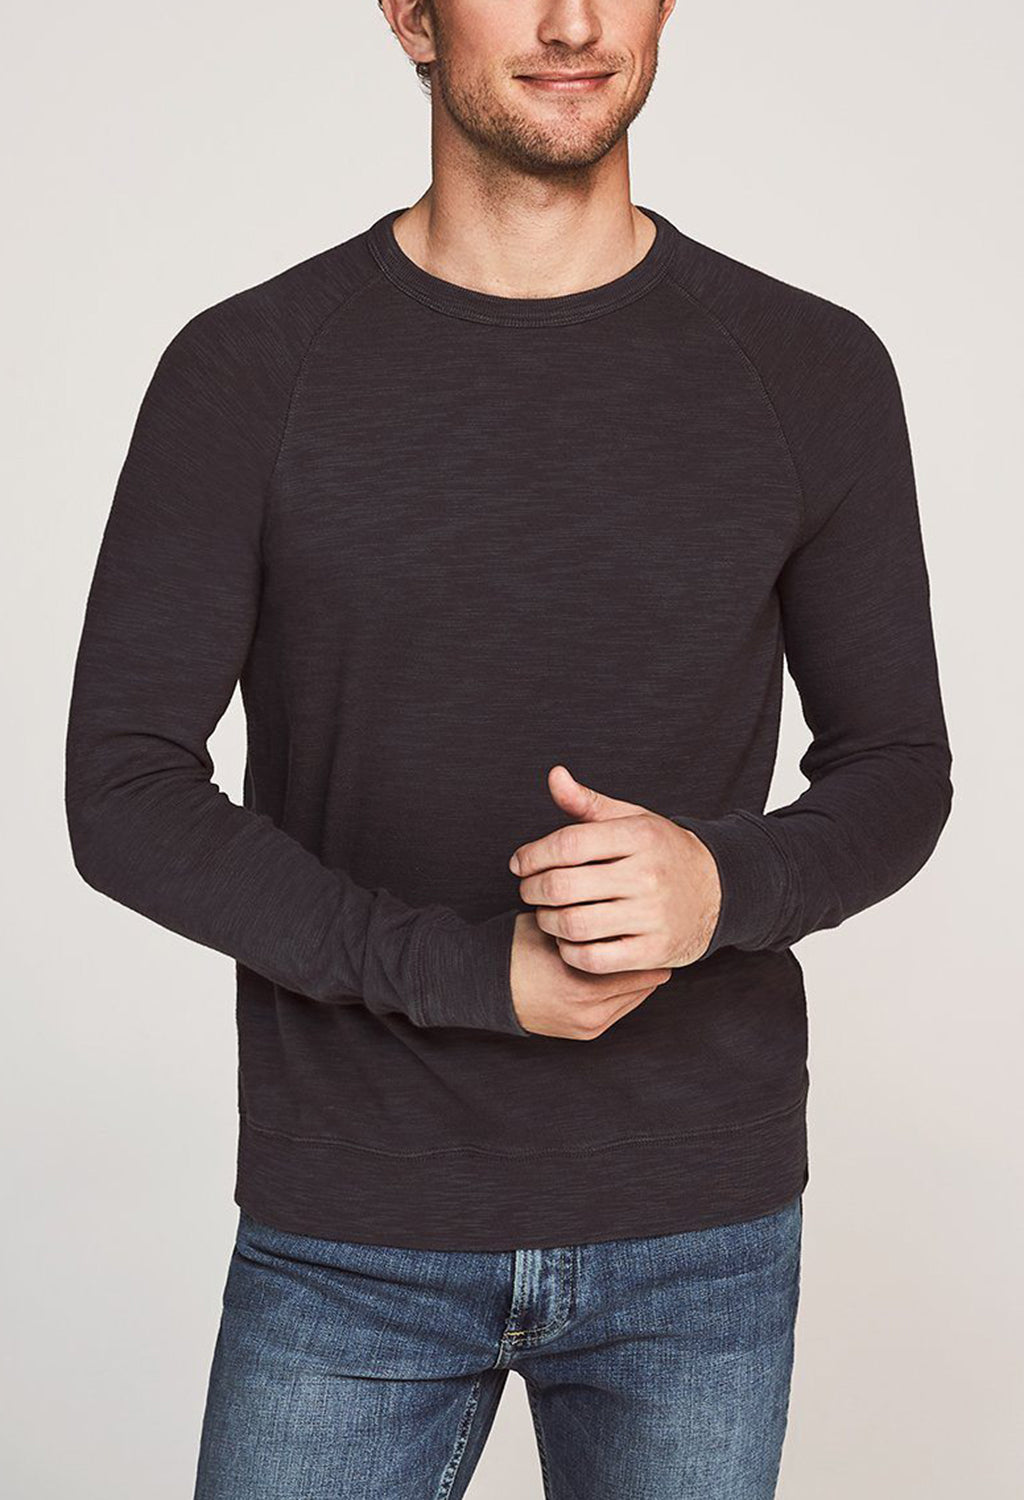 Faherty Raglan Sweatshirt - RUST & Co.